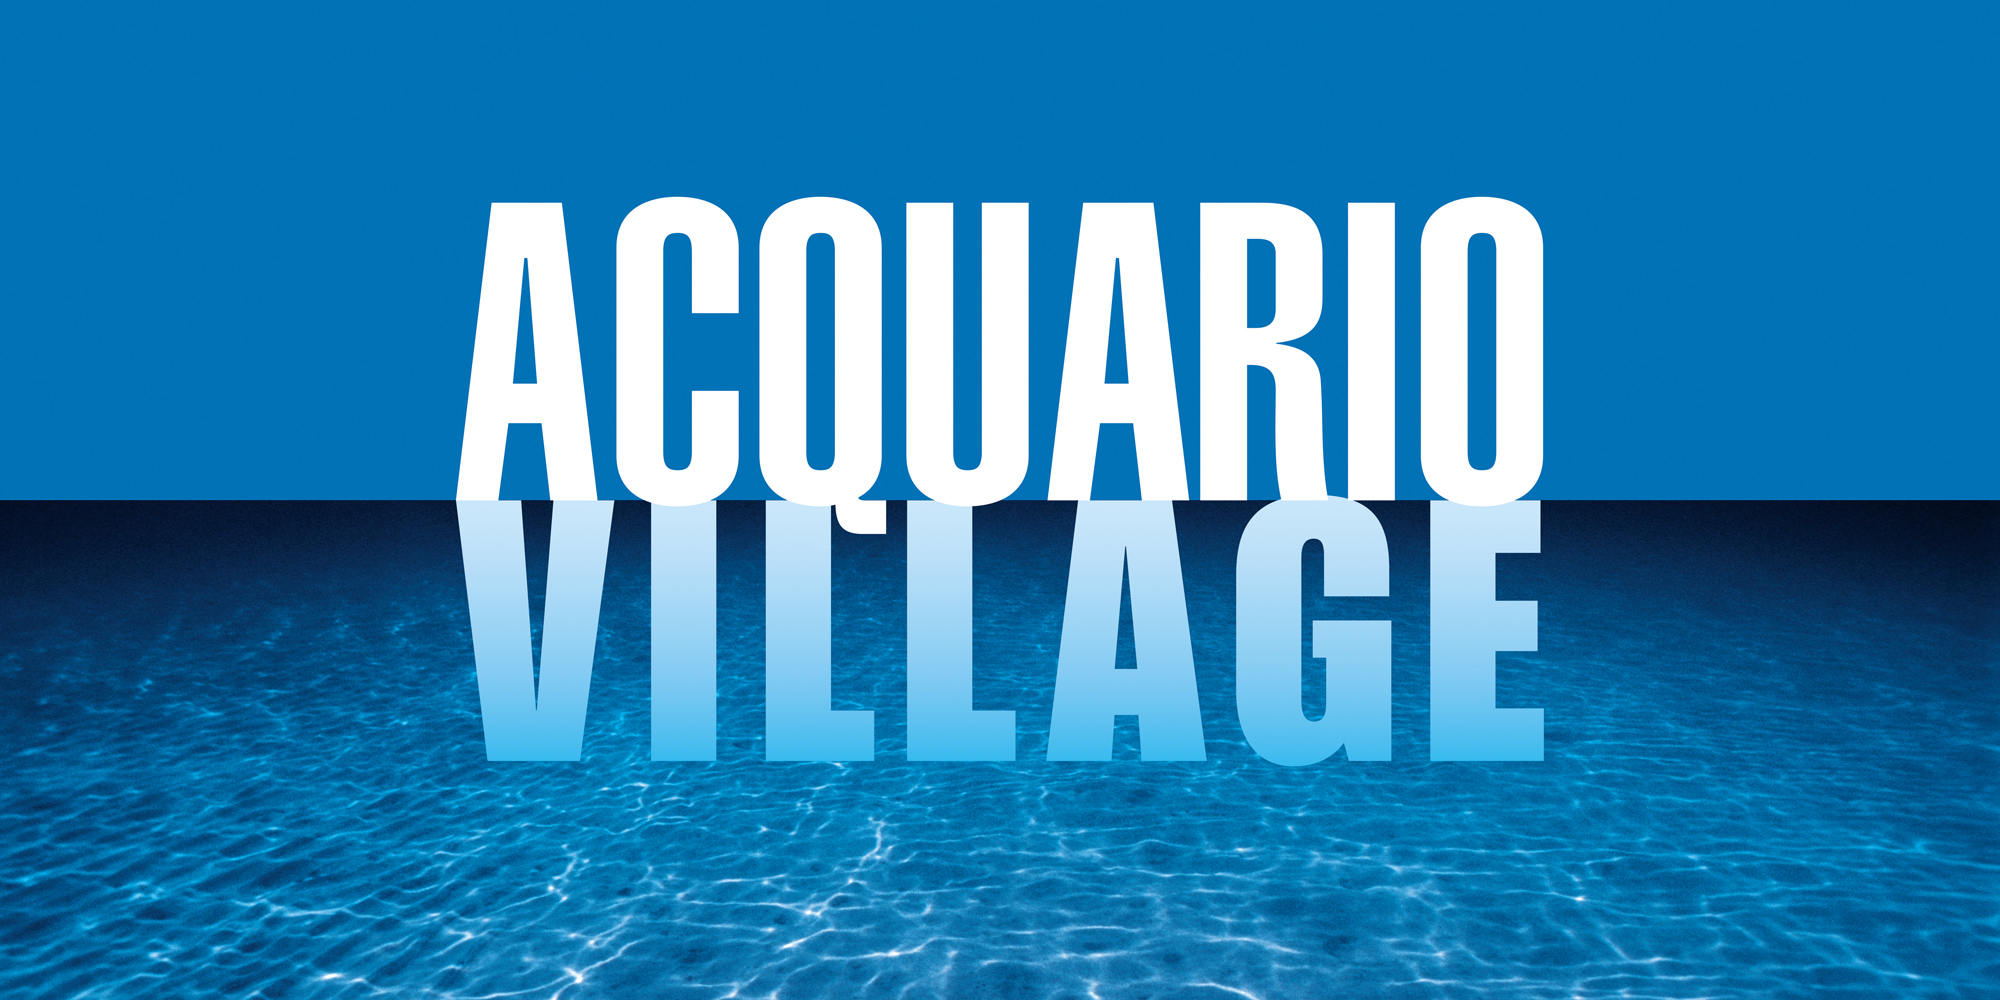 logo acquariovillage